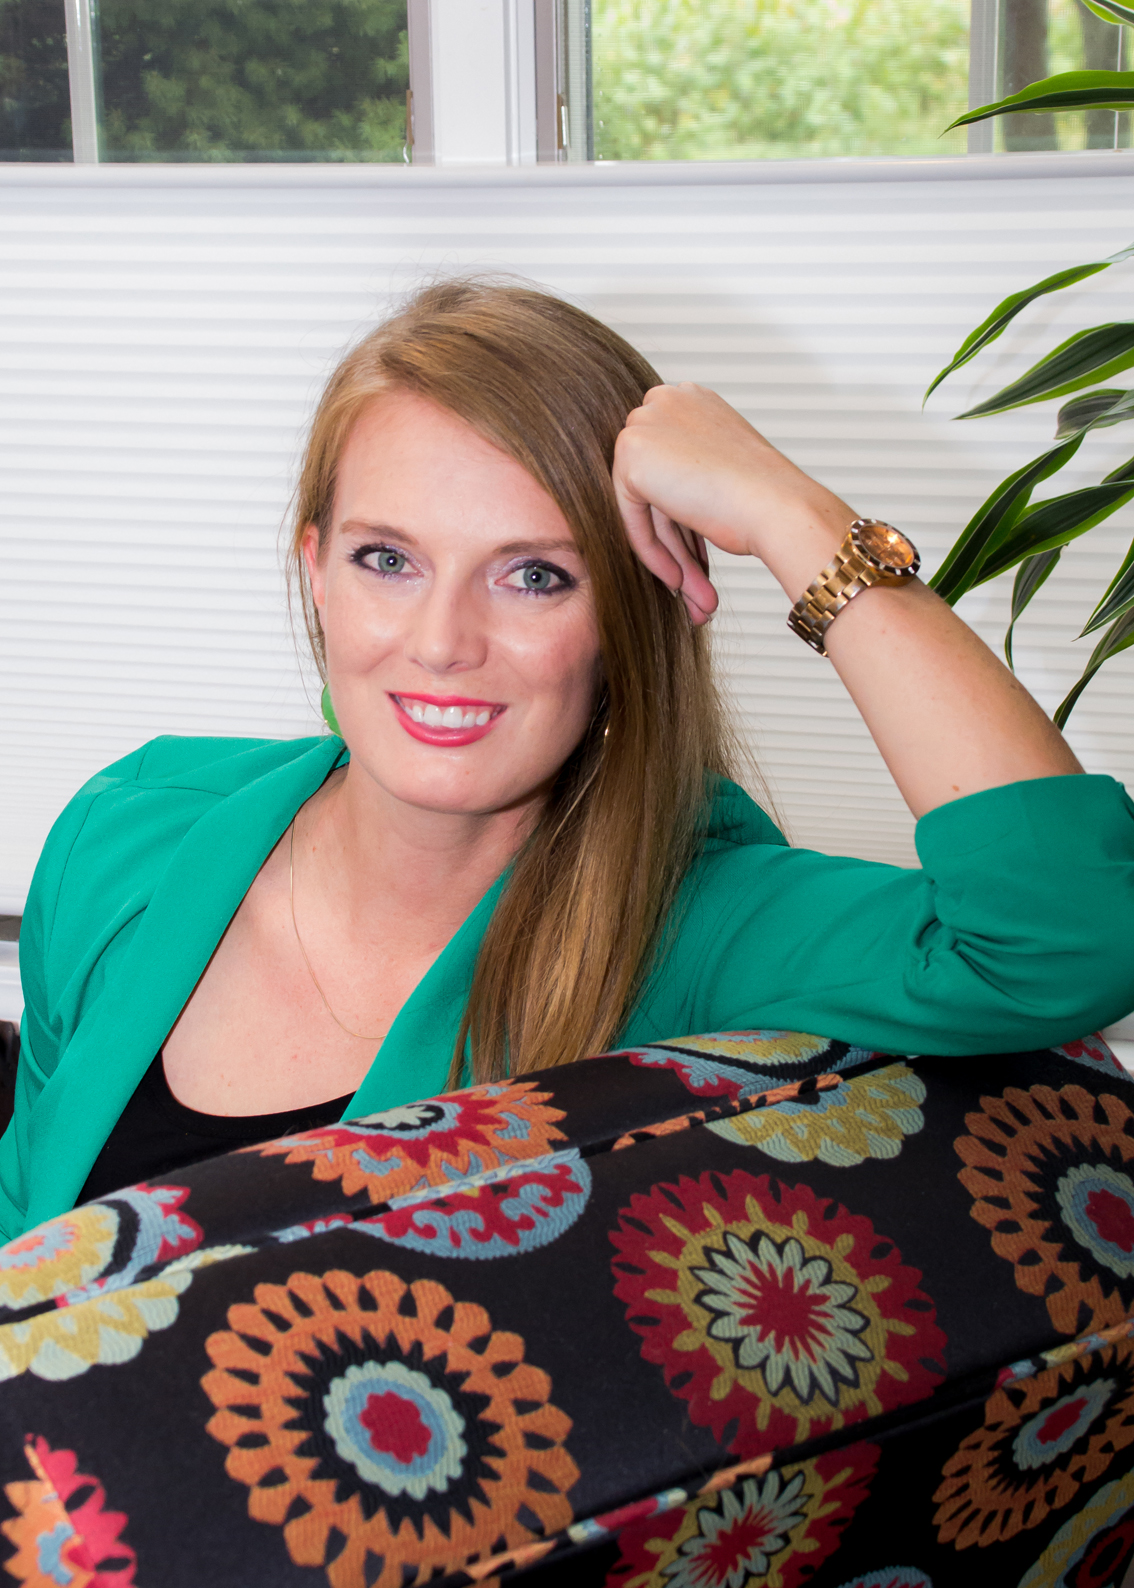 Jarianne Smith - joined the Dau Consulting team in the fall of 2014 and assists with training projects, marketing, website design, and social media management. Jade received her bachelor's degree from Wayne State College, Nebraska in Marketing & Advertising. She has over 8 years of marketing experience working for a range of small and large businesses in multiple states. Helping small businesses and non profits with their social media marketing plan has become her new passion. Using her creativity, she helps organizations further their marketing efforts by tackling the ever-changing social media platforms. If Jade isn't on her phone posting, tweeting, tagging, or pinning, then you will probably find her either running, traveling, hiking with her husky, or watching her husband coach at an EIU football game.